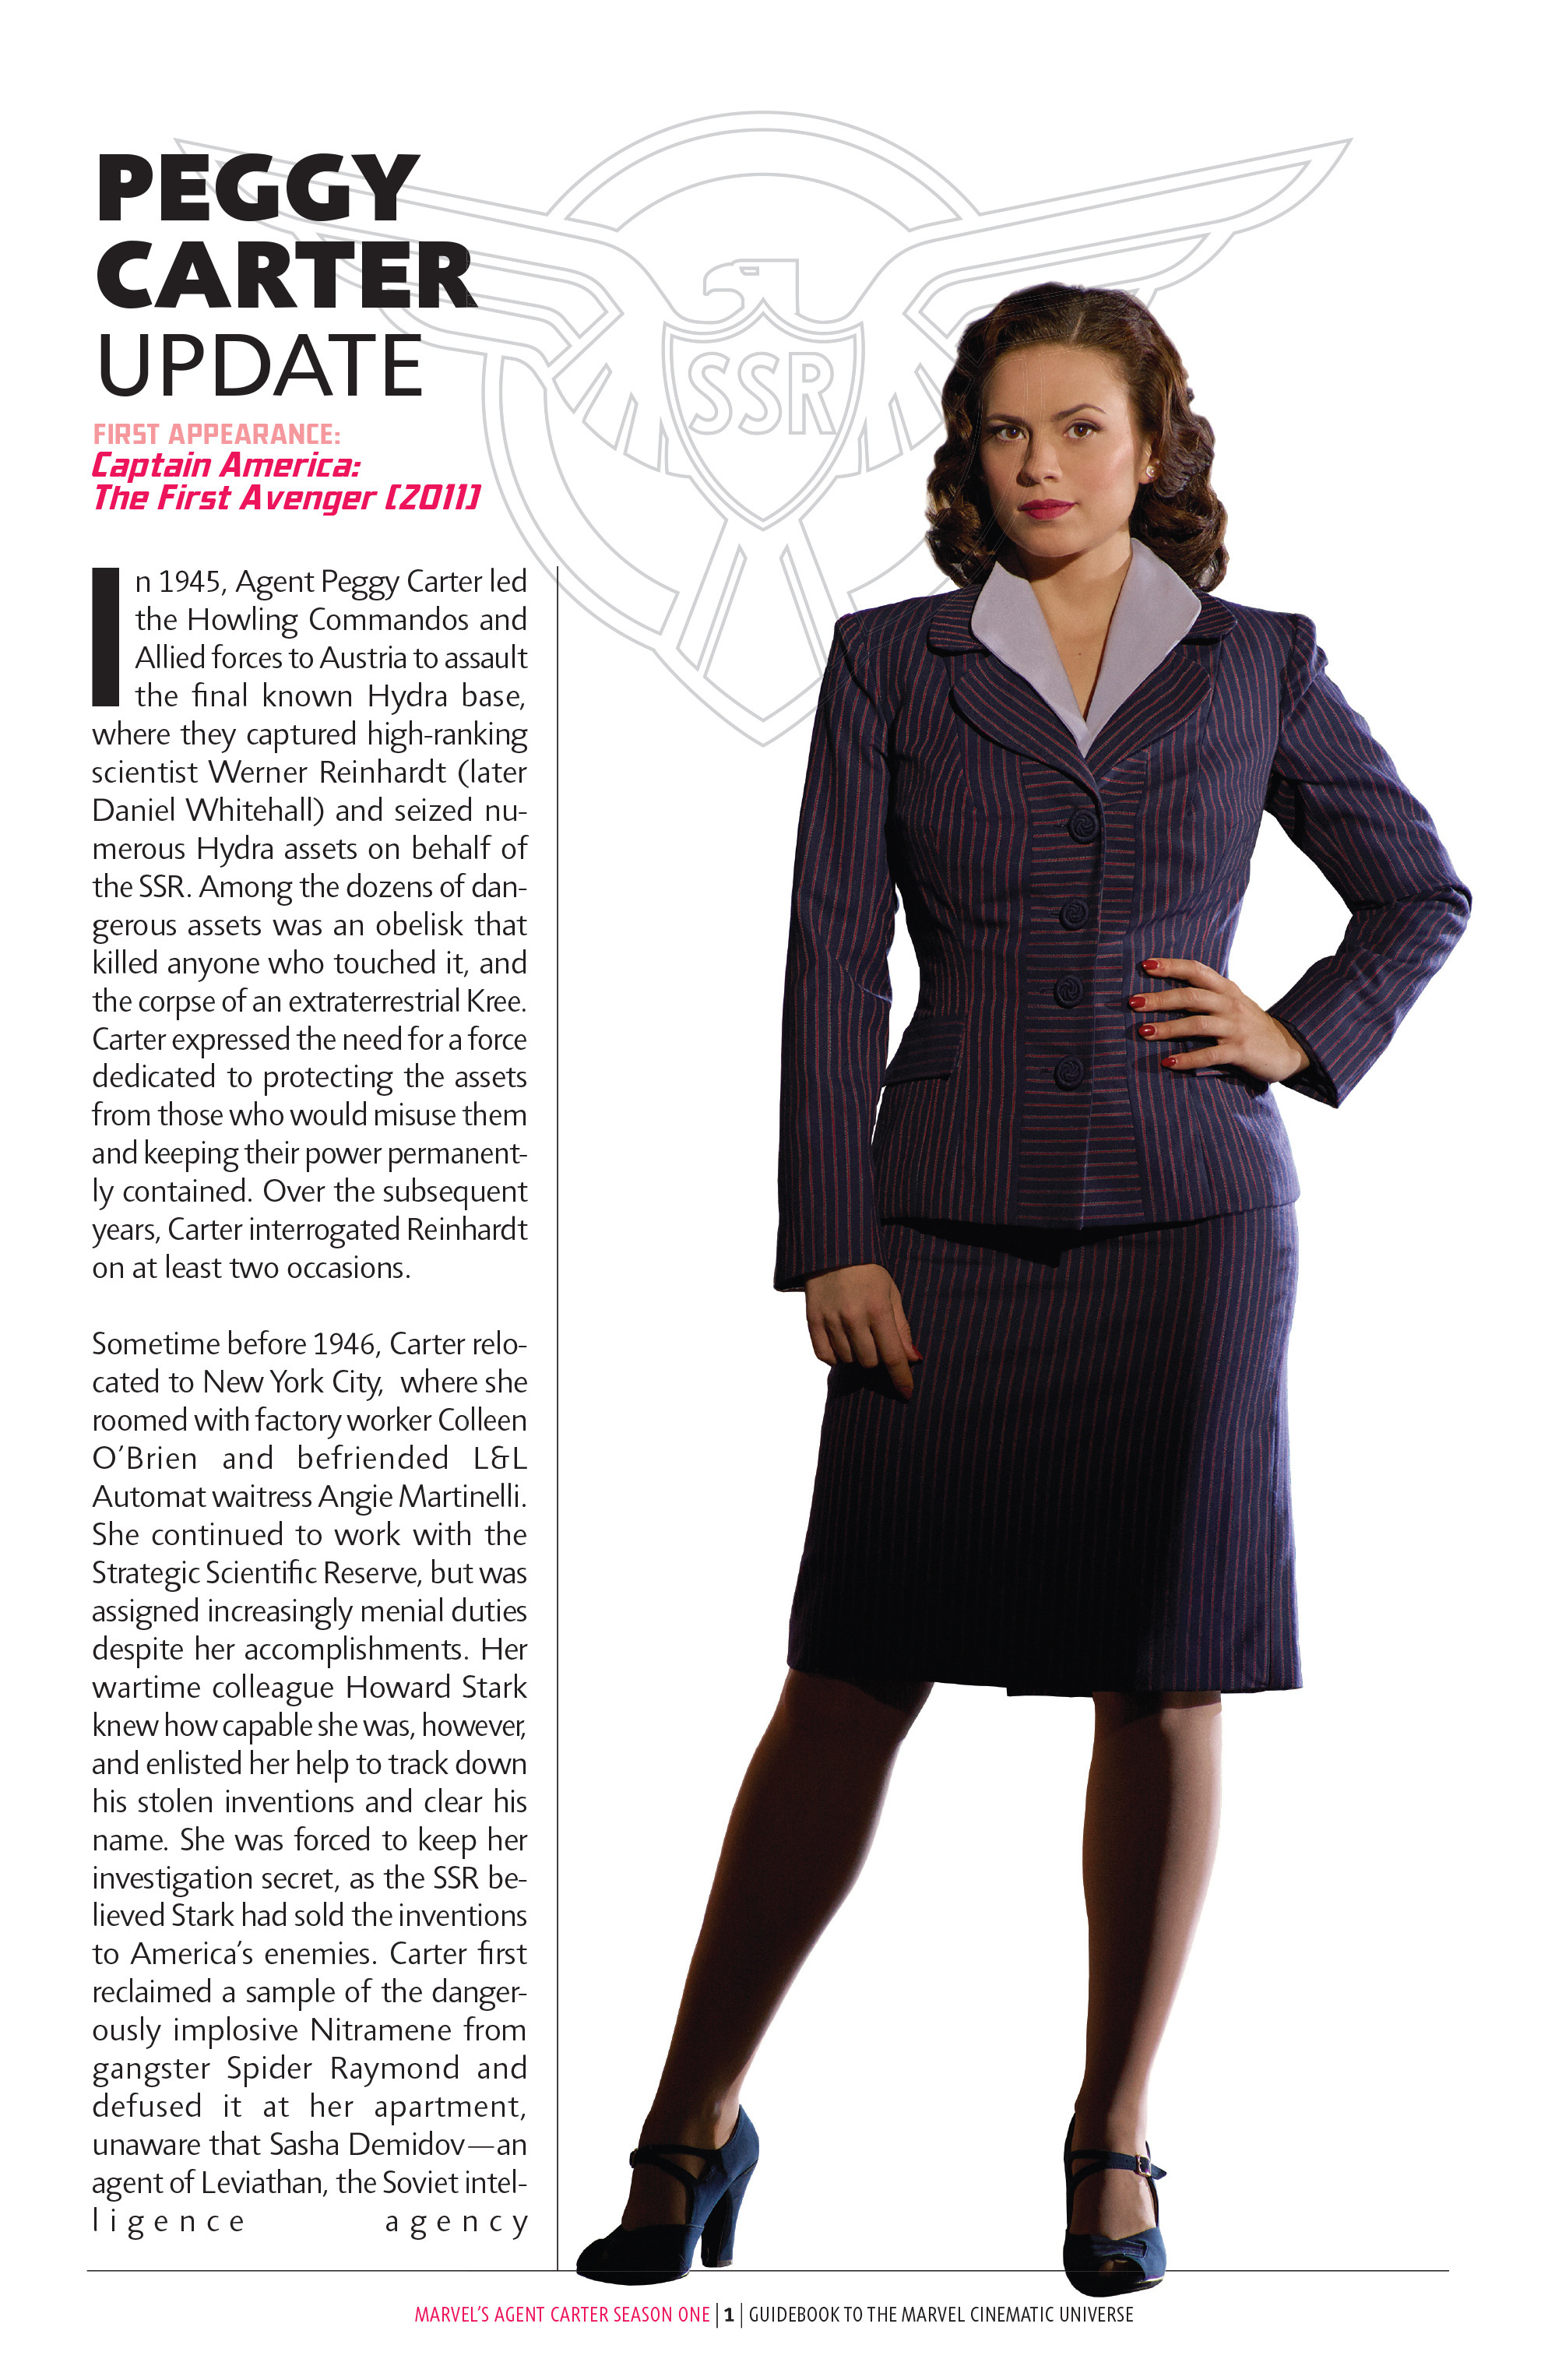 Guidebook to the Marvel Cinematic Universe - Marvels Agent Carter Season One Full Page 3